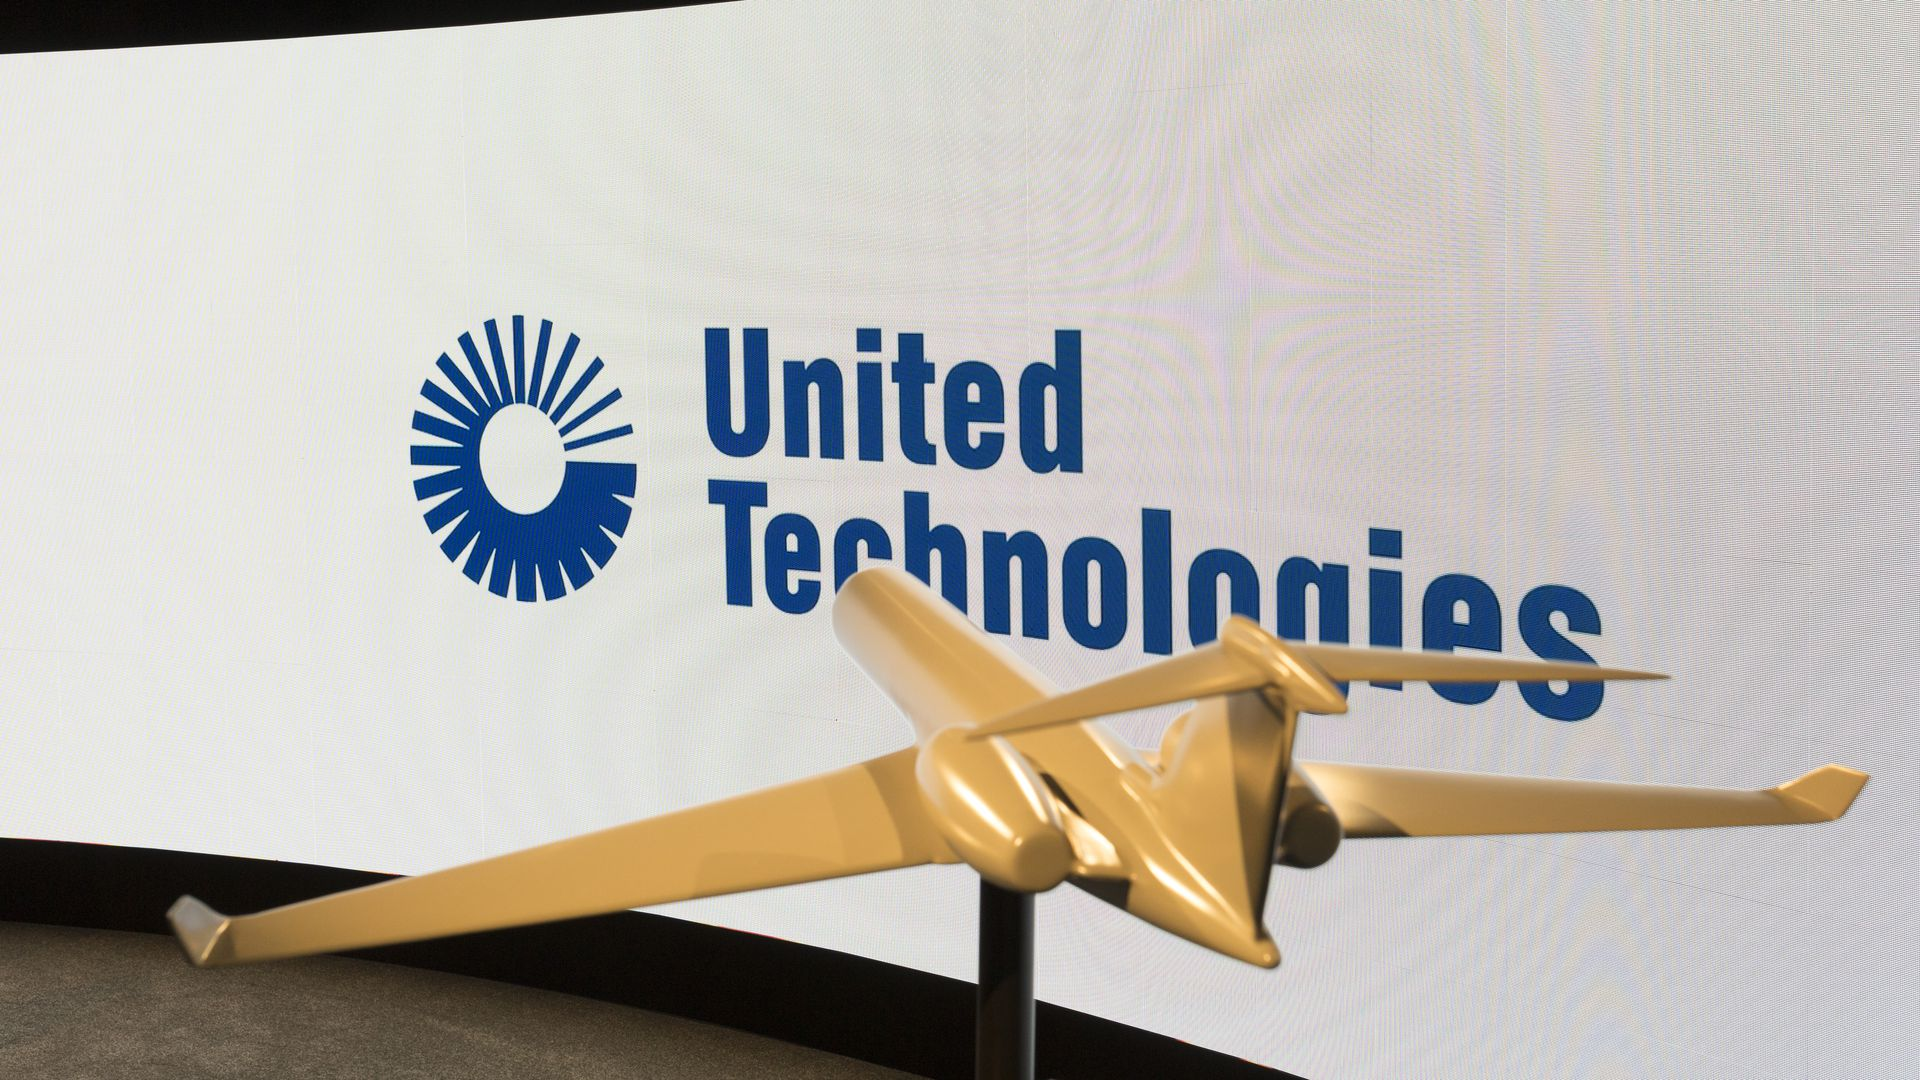 United Technologies presentation at the Farnborough Airshow